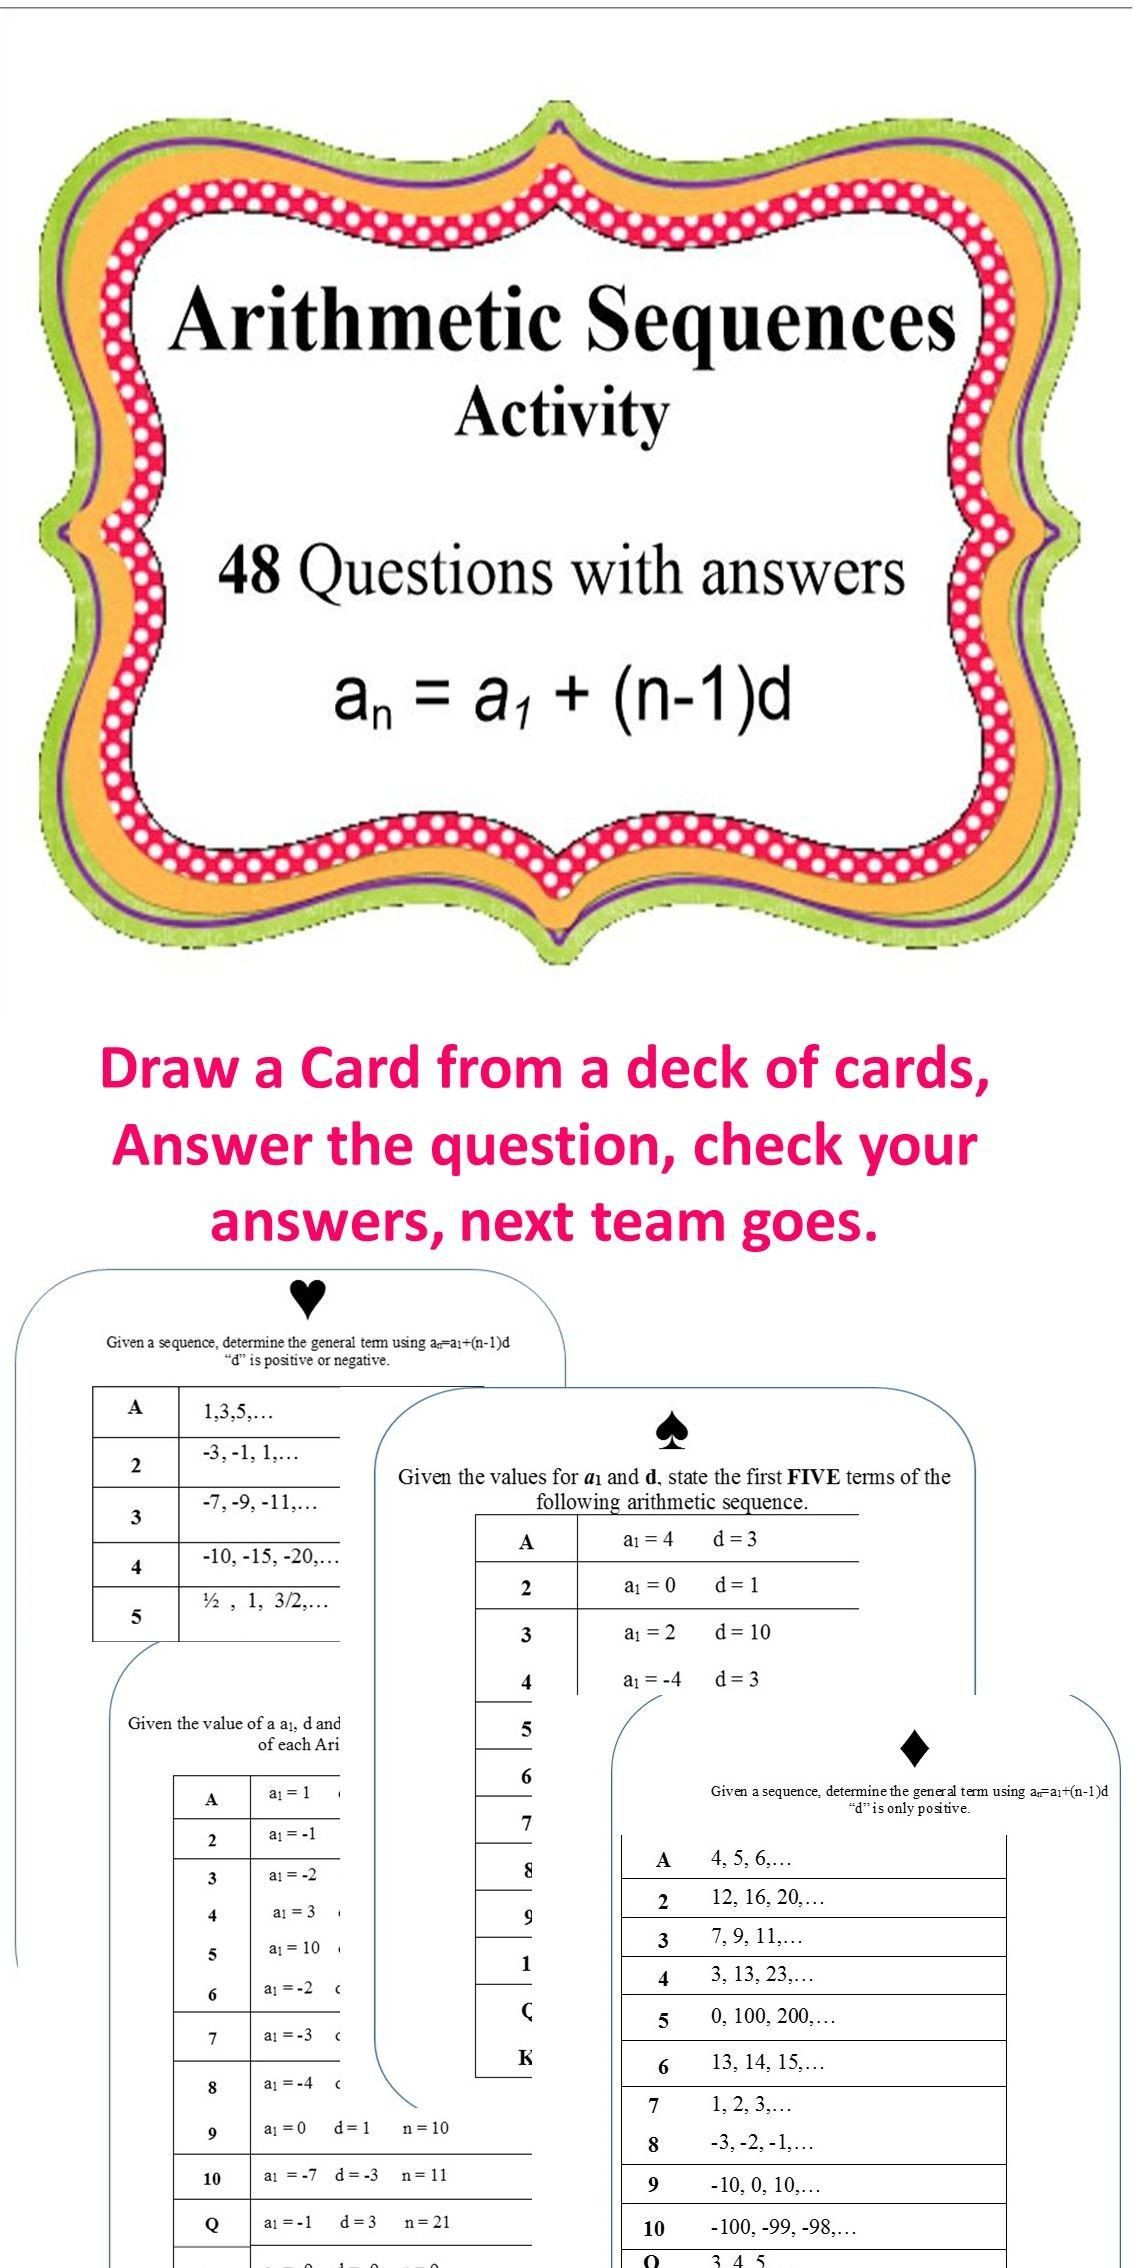 Arithmetic And Geometric Sequences Worksheet Arithmetic Sequences Hsf Bf A 1 Hsf Bf A 2 Edita In 2020 Arithmetic Sequences Arithmetic Sequences Activities Arithmetic